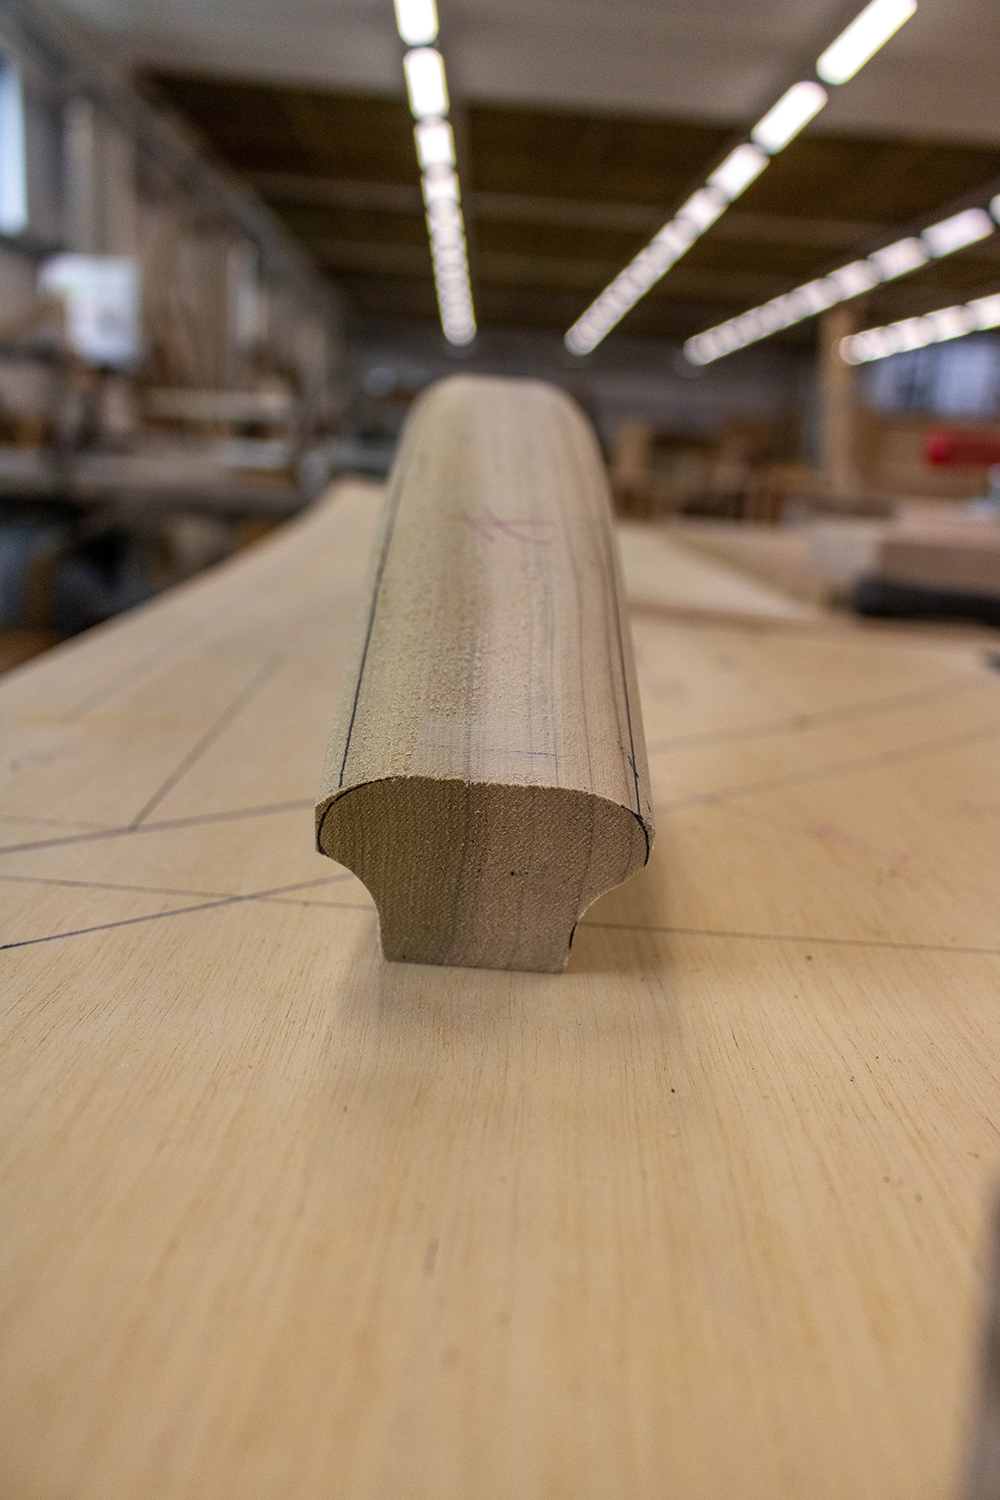 Curved cut of wood in joinery workshop